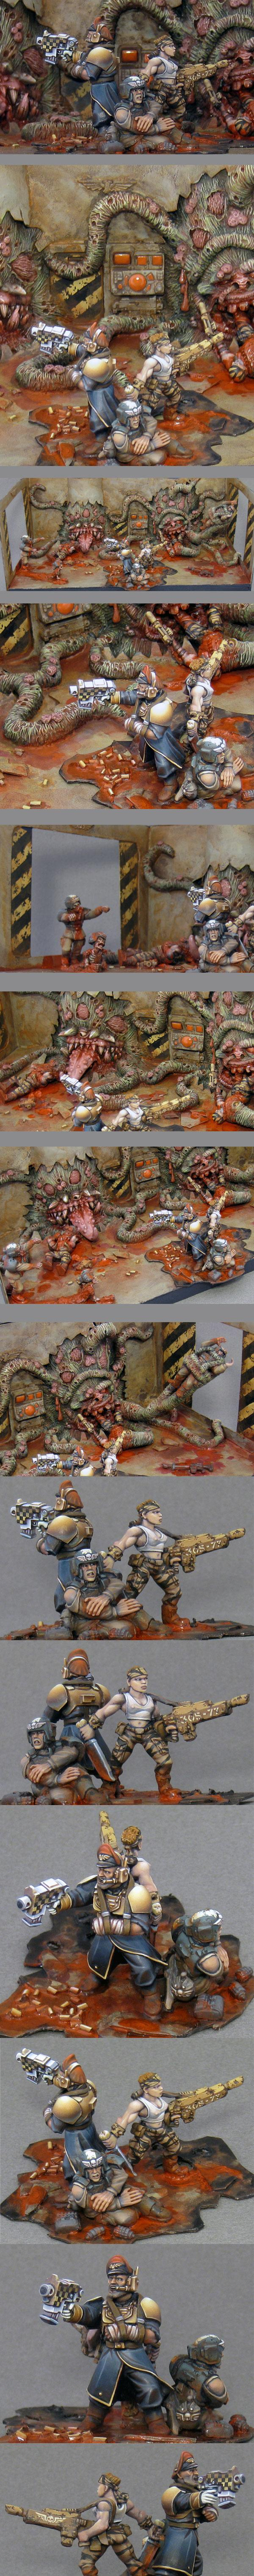 Blood, Catachan, Chaos, Commissar, Conscript, Daemons, Diorama, Imperial Guard, Last Stand, Massacre, Nurgle, Possessed, Slaughter, Steadfast, Tentacles, Wet Tshirt, Zombie